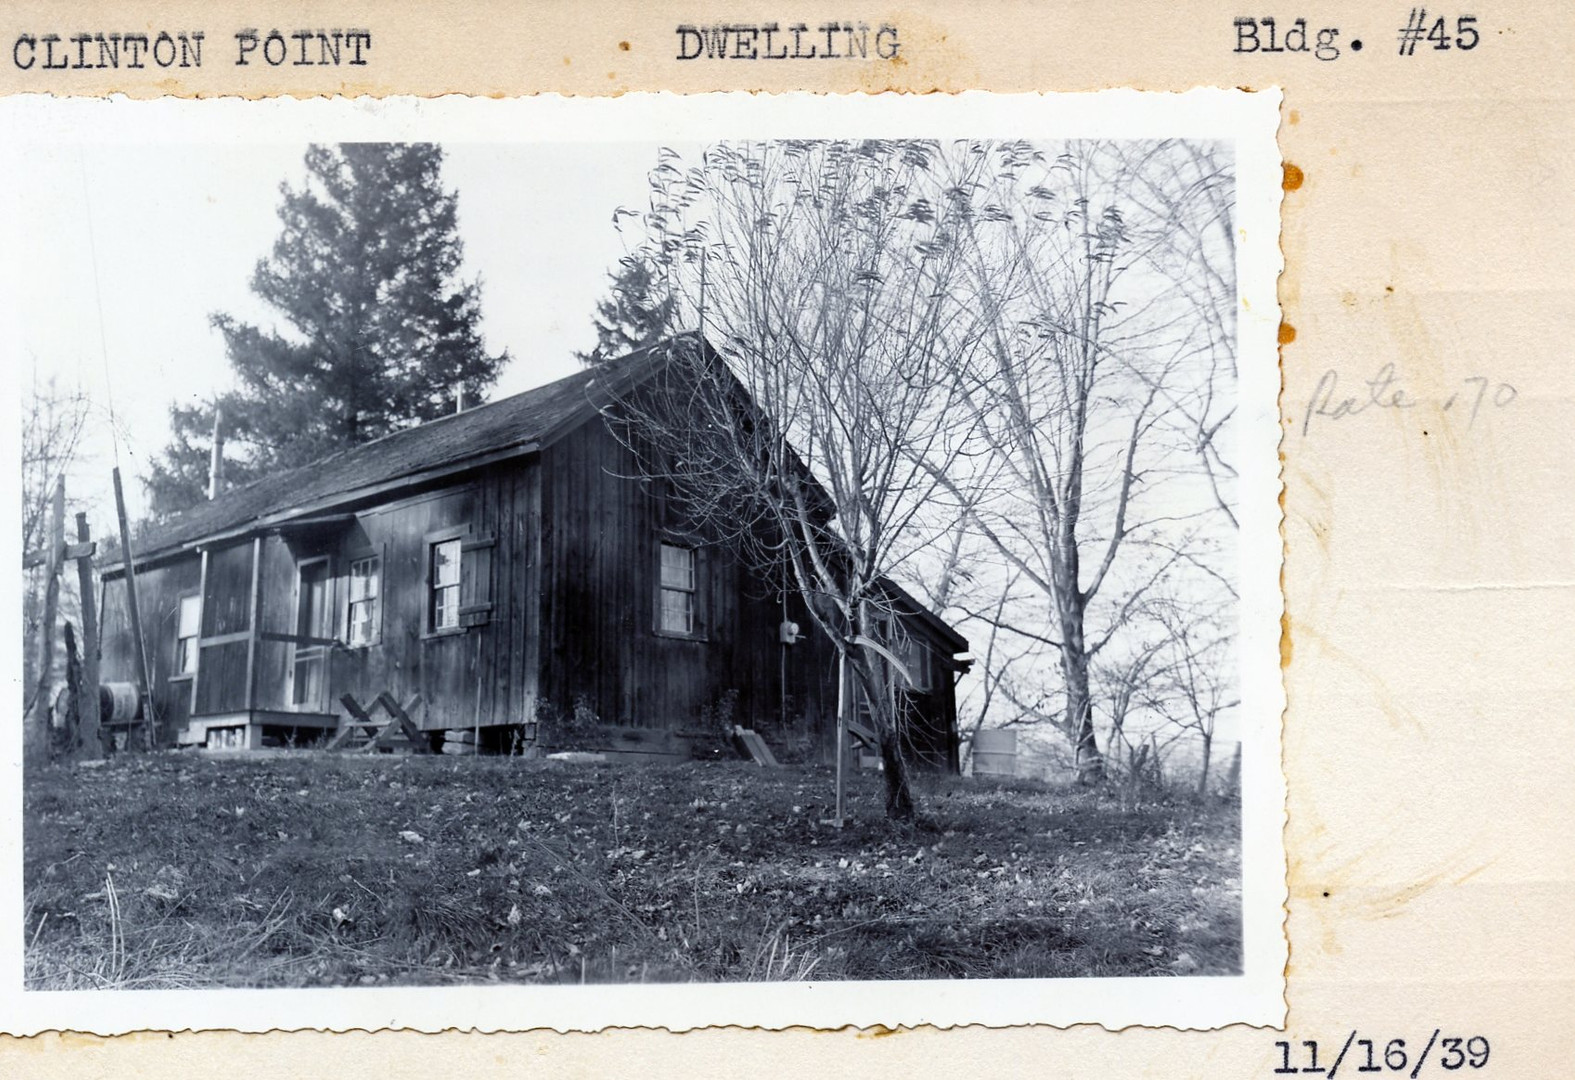 Dwellings Building #45 11/16/39